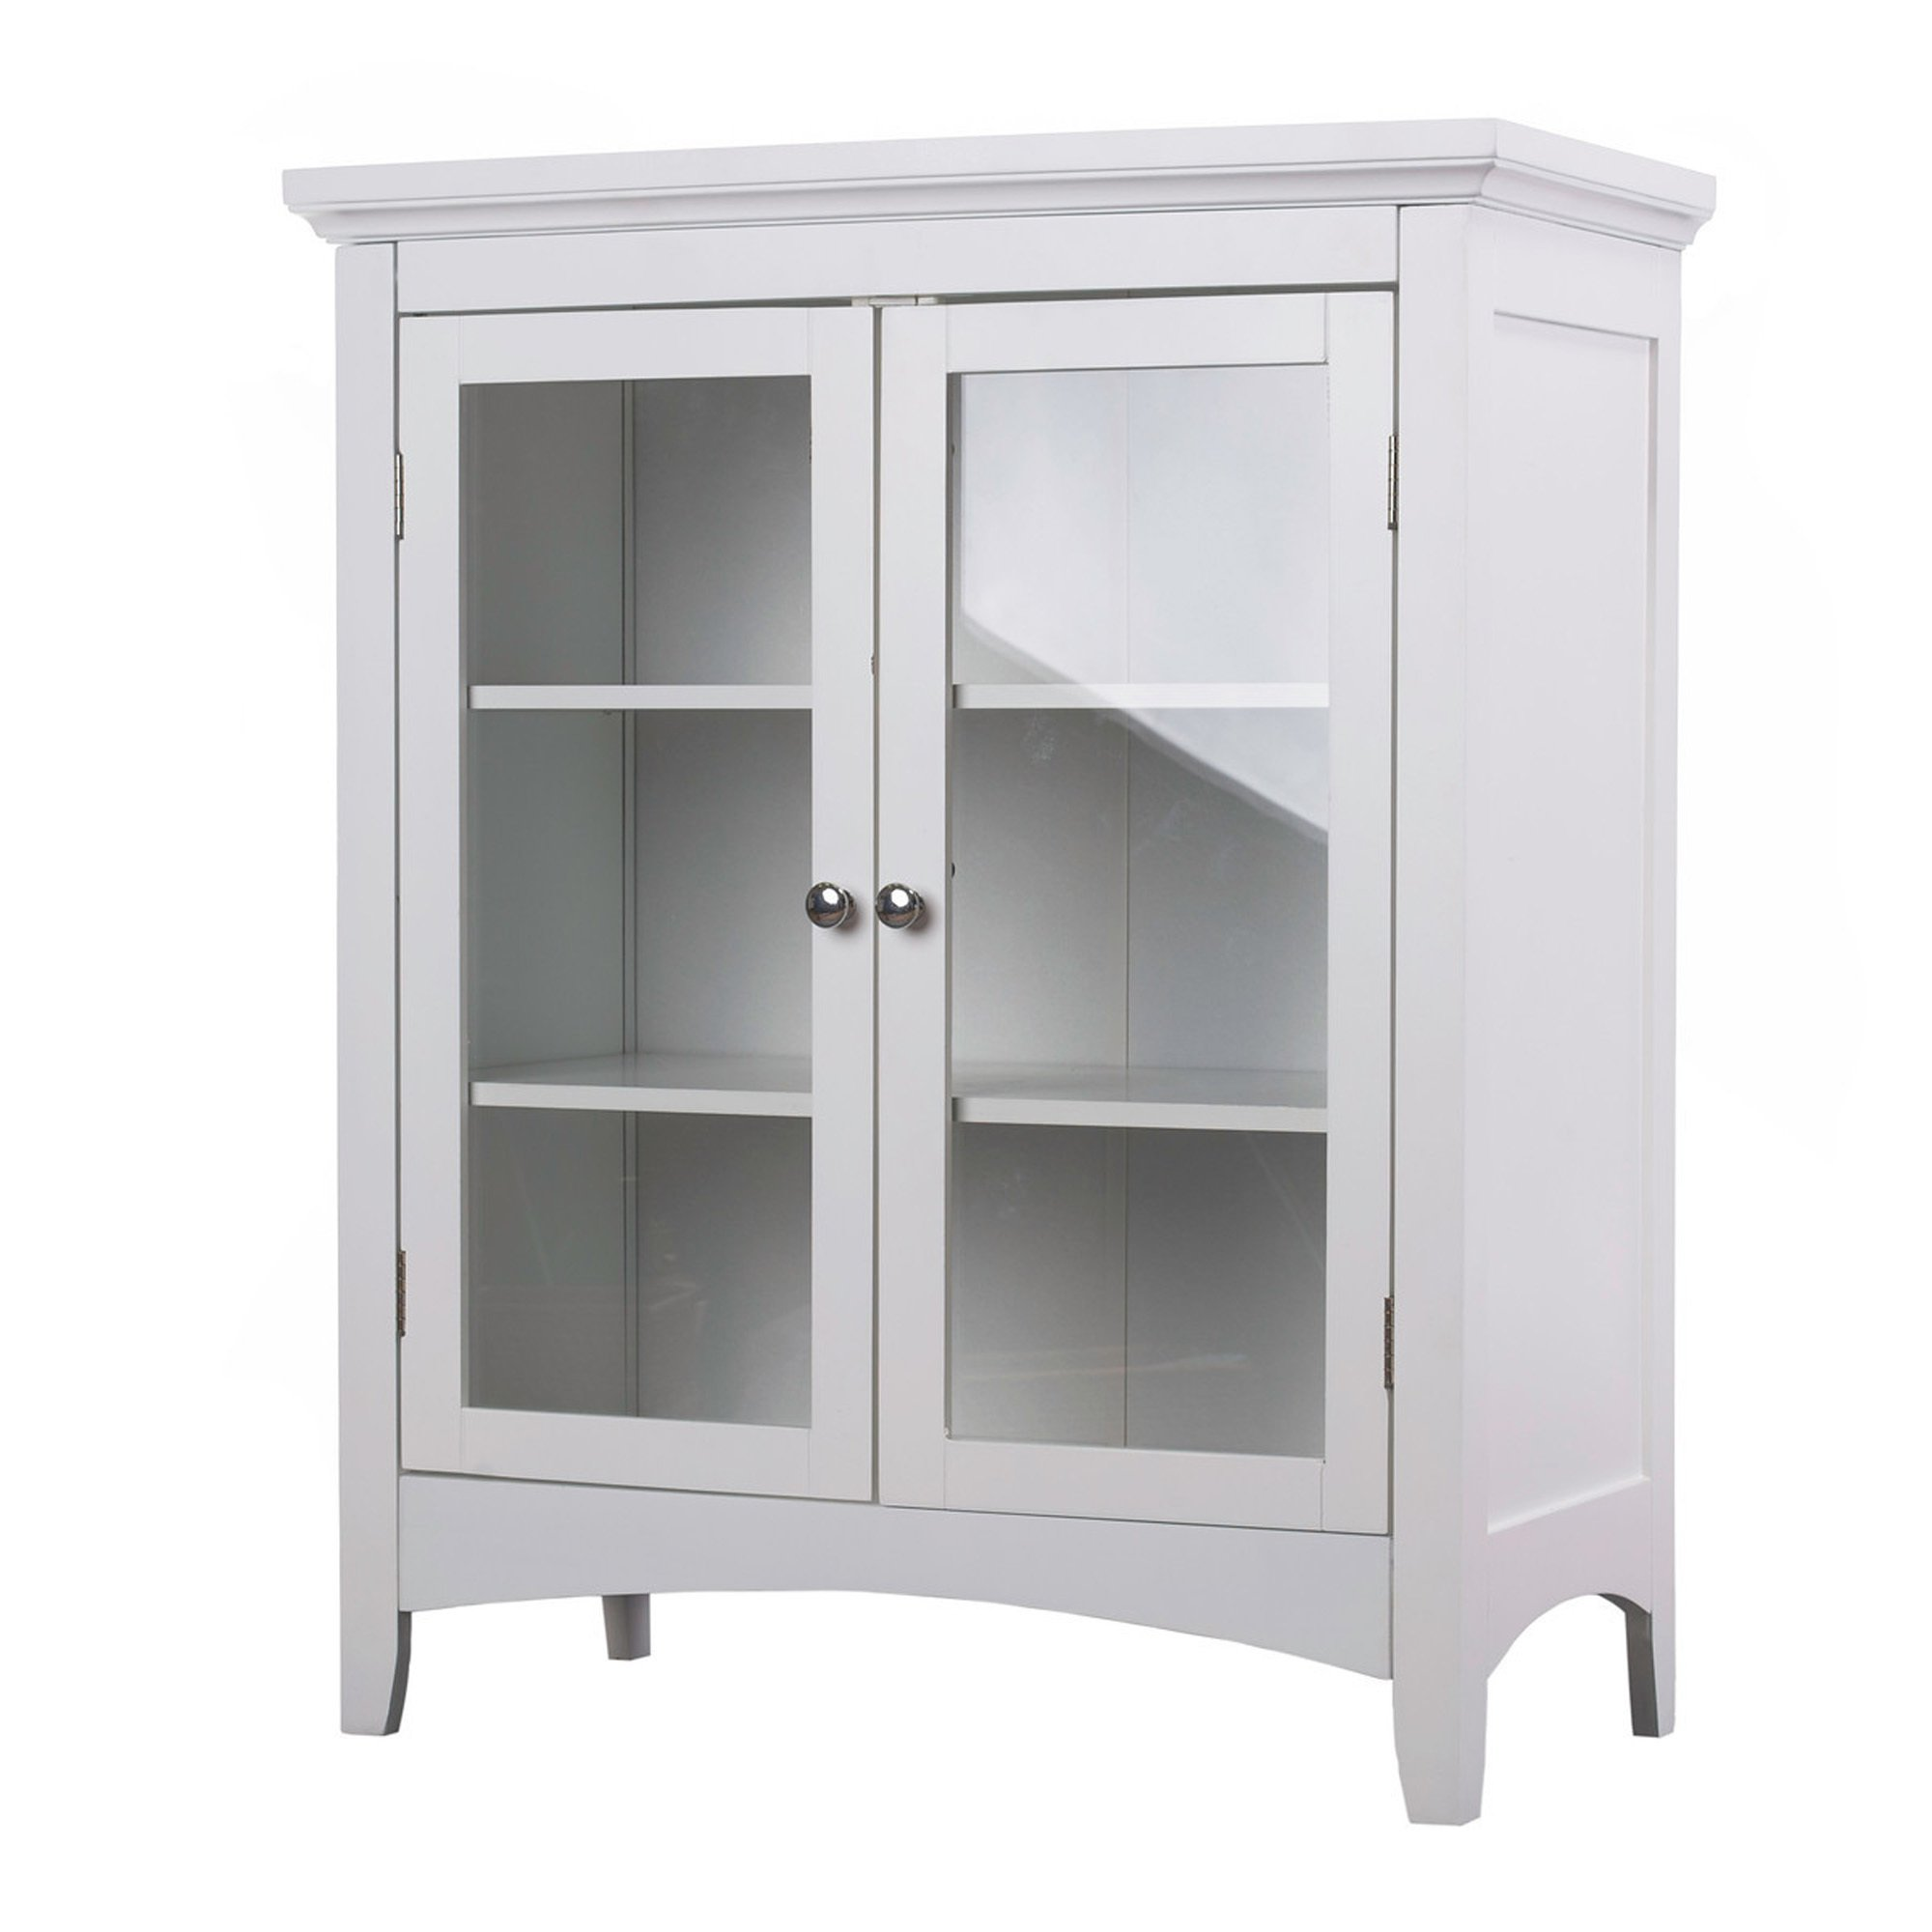 White Bathroom Cabinet Floor Home Fashions Double-door Bathroom Furniture Small Wall Cabinets Vanity for Bathroom by SM Traditional